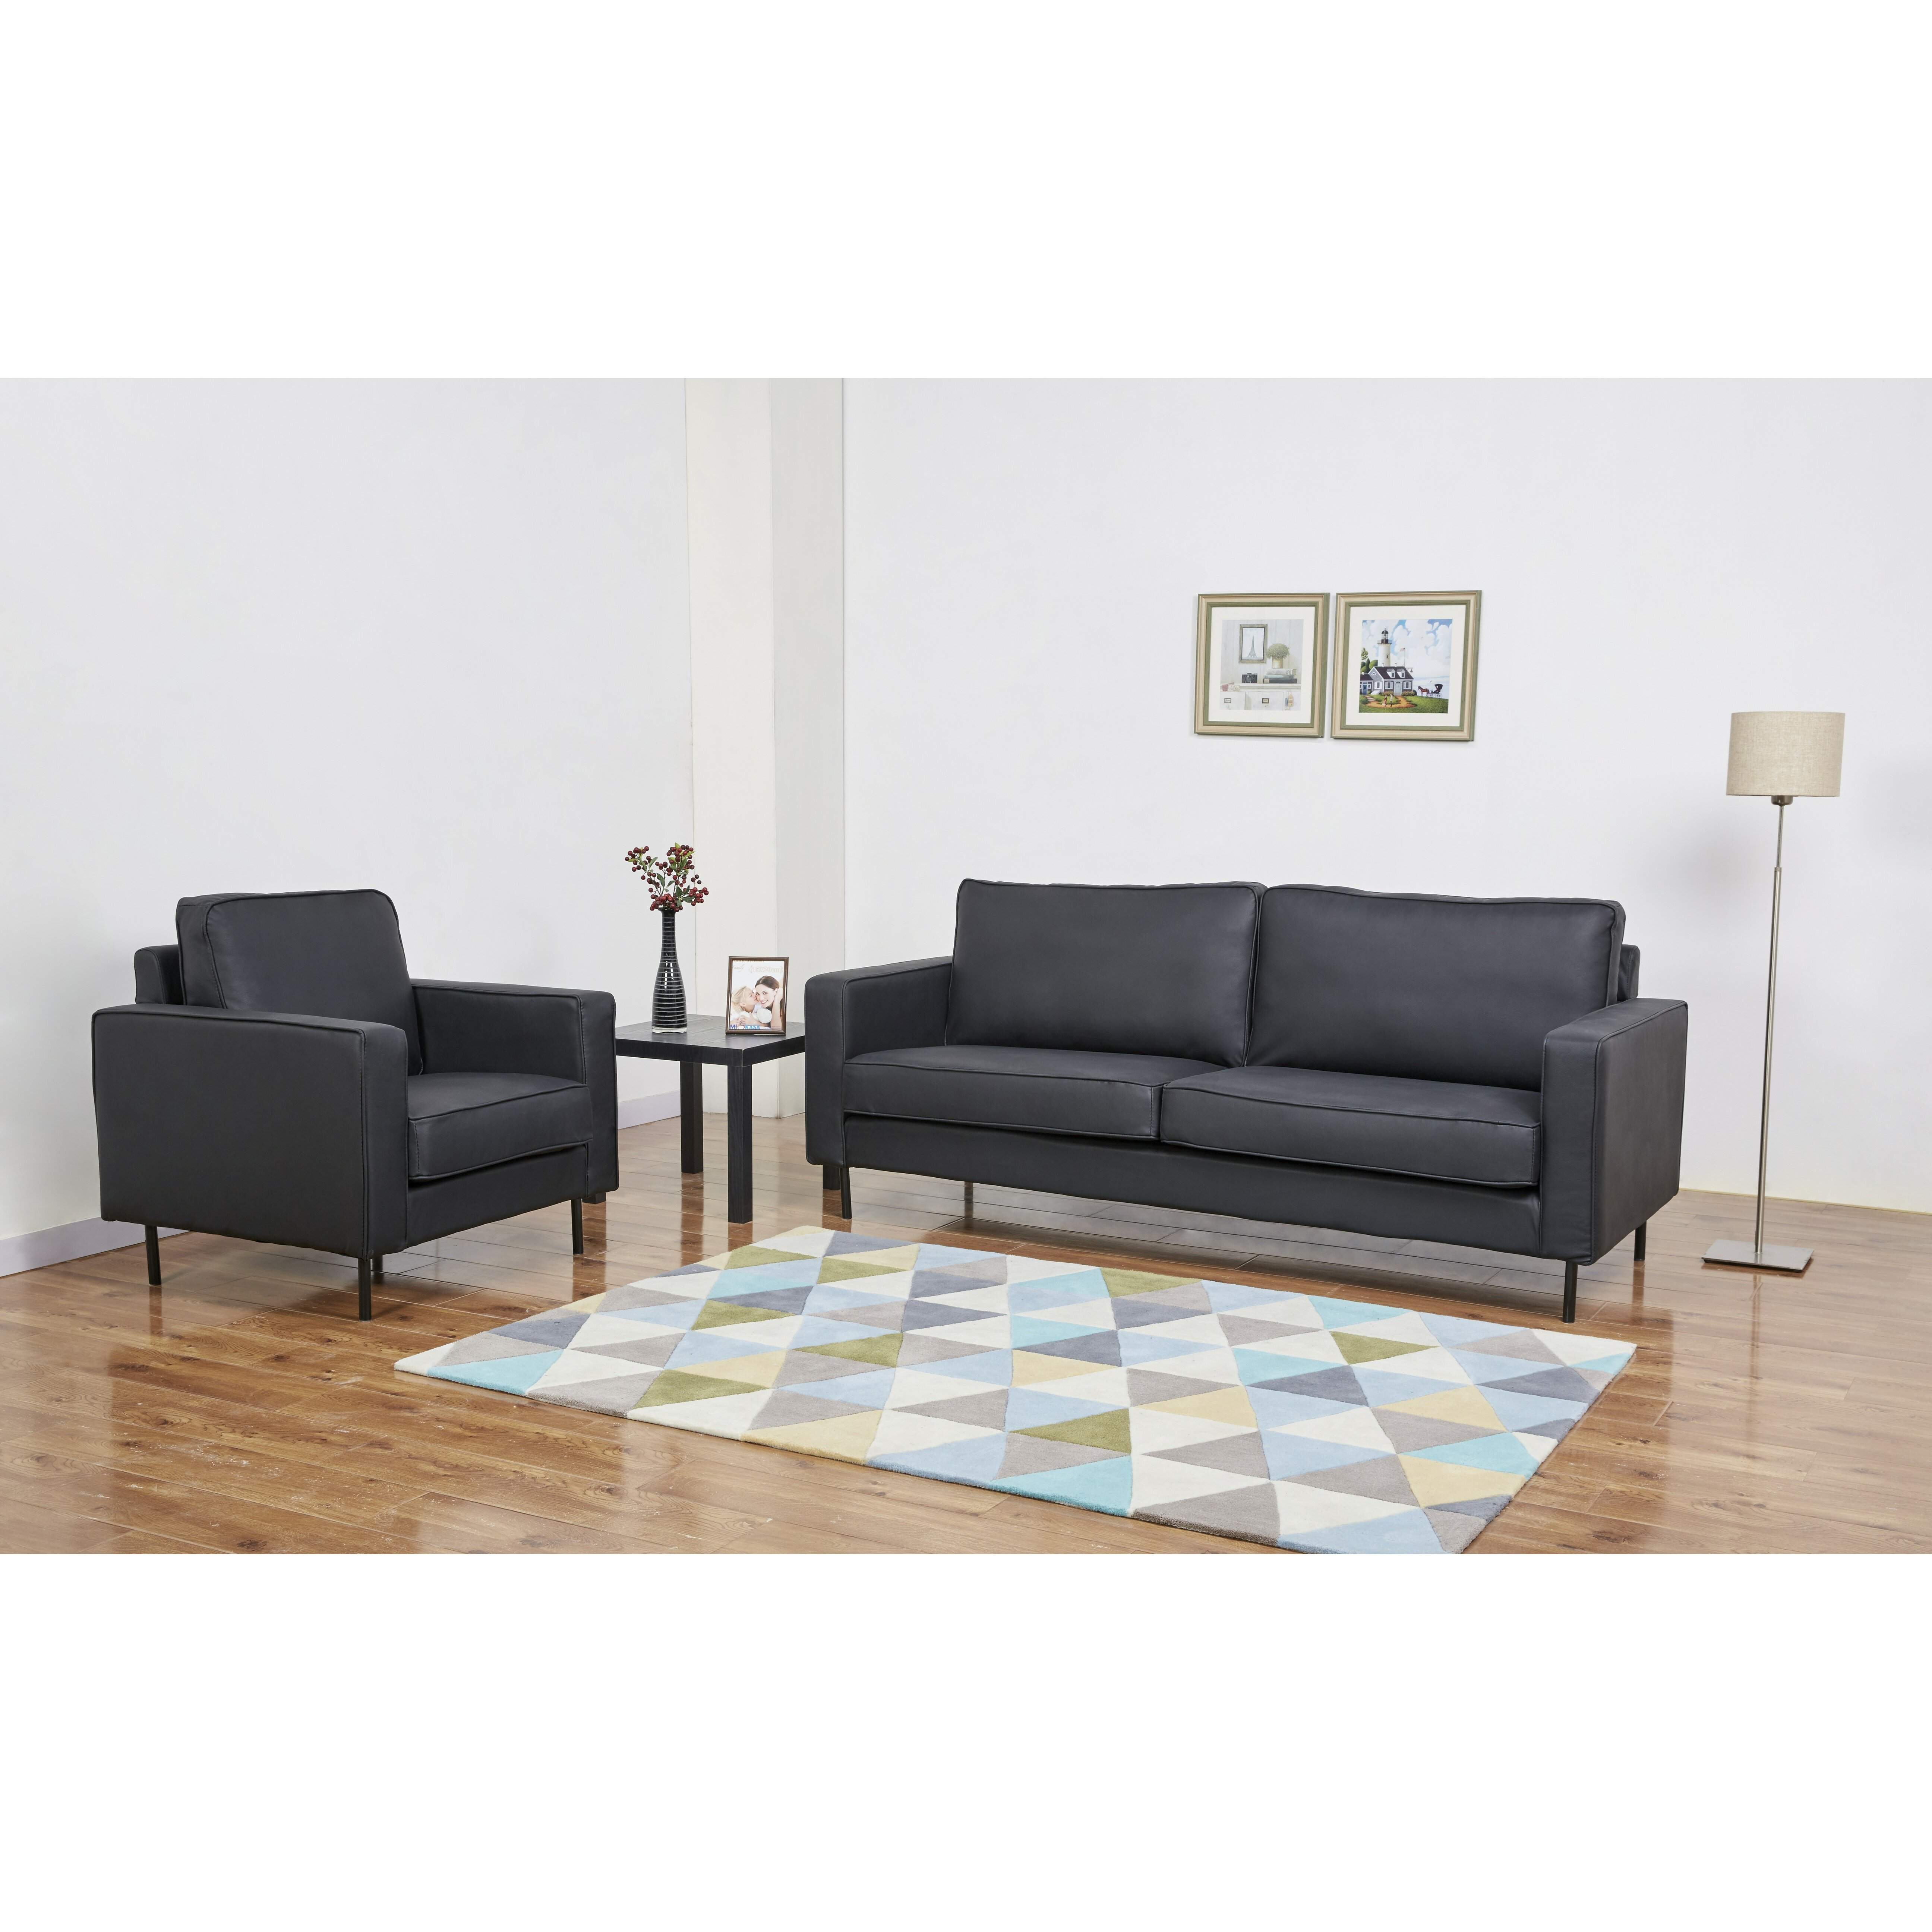 Leader Lifestyle Connor 2 Piece Living Room Set Wayfair UK